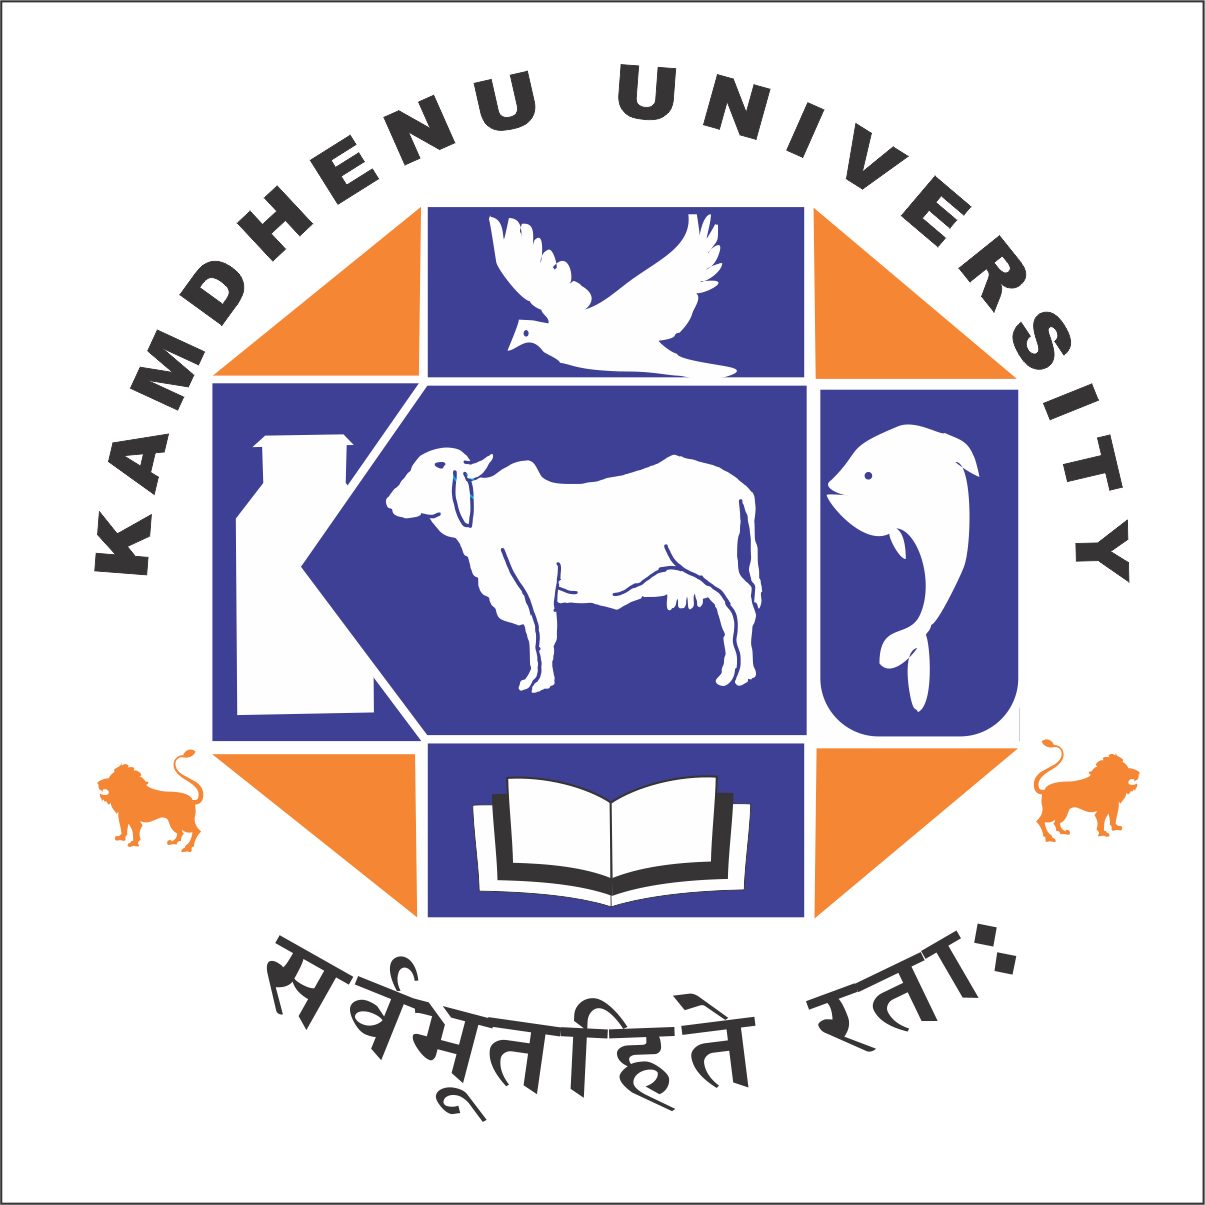 Naukri vacancy recruitment in Kamdhenu University